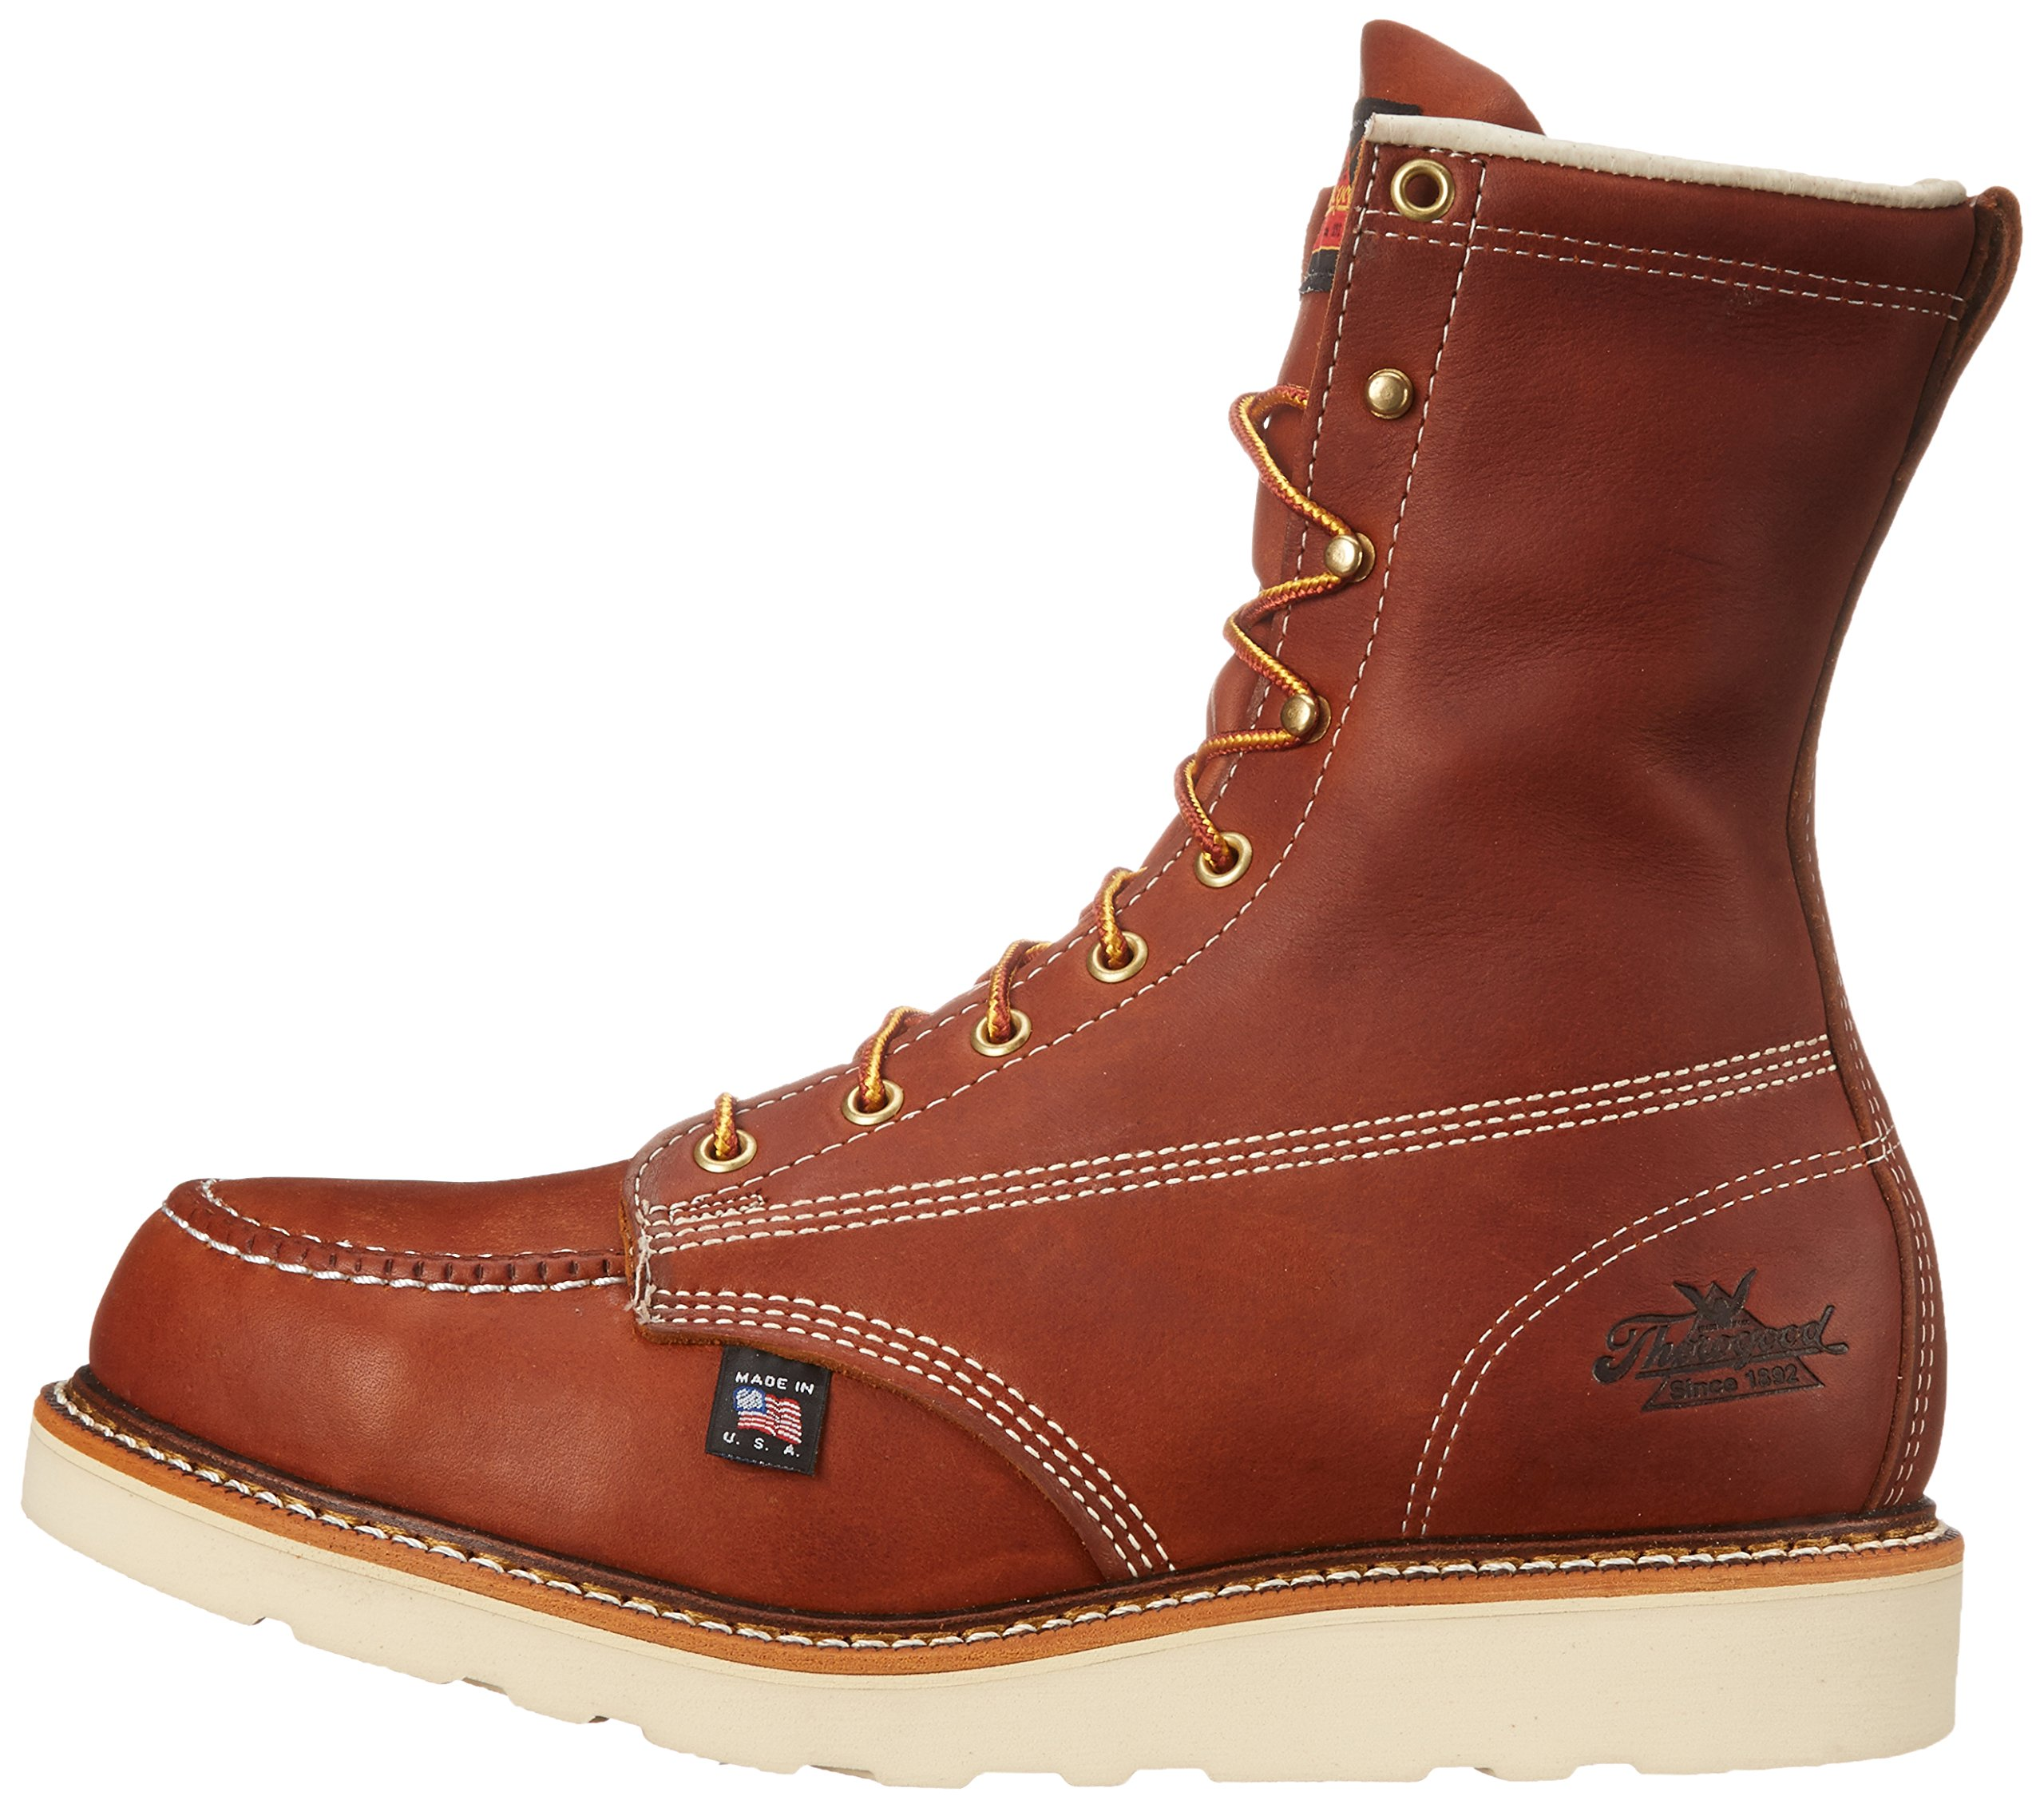 Thorogood Heritage 8'' Safety Toe Work Boot, Tobacco Oil Tanned, 10 EE US by Thorogood (Image #5)